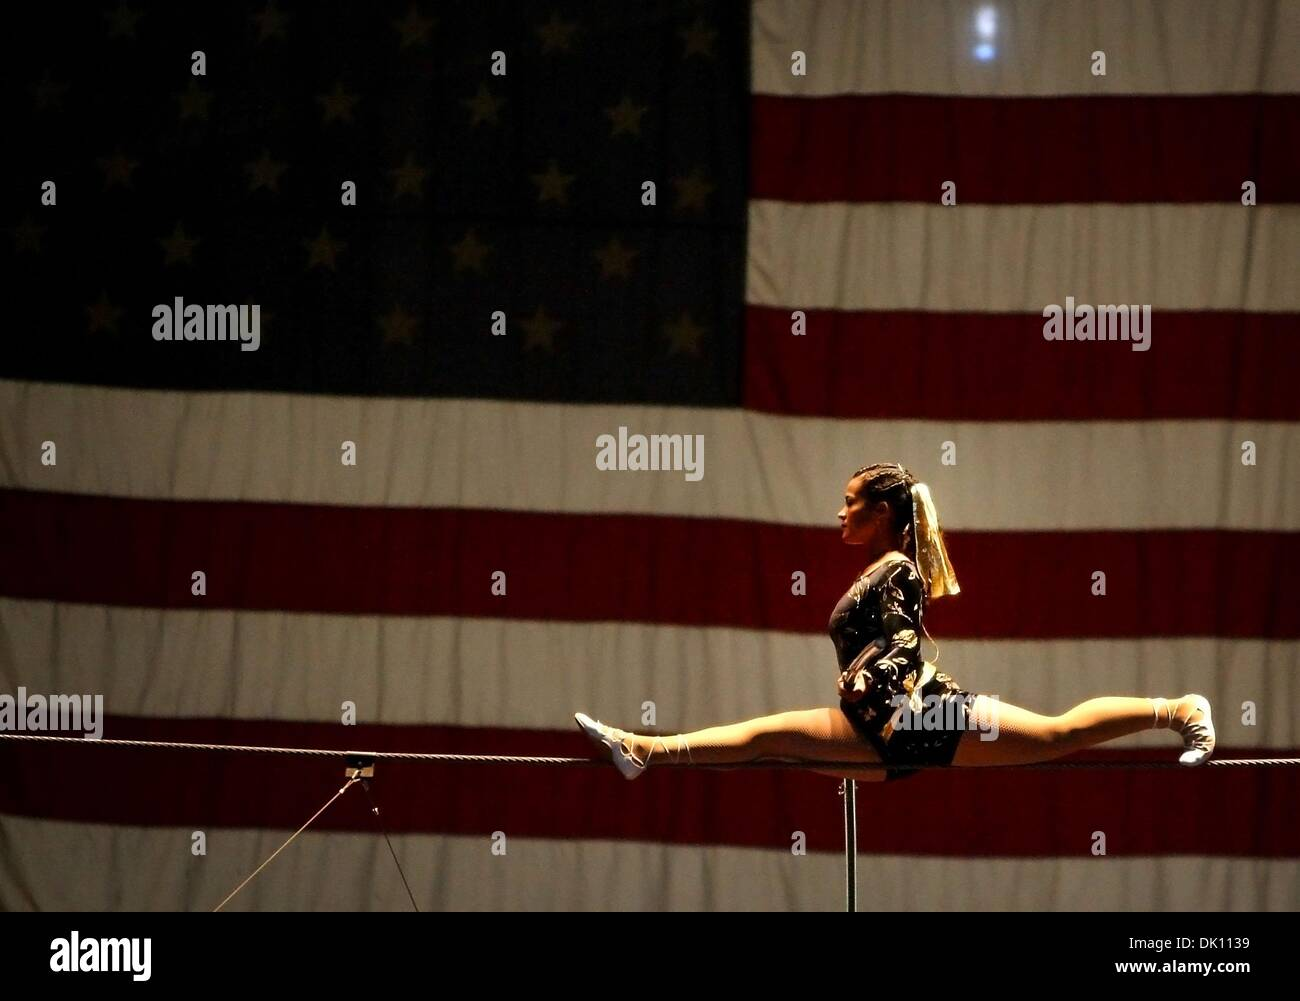 Feb. 10, 2011 - Memphis, Tennessee, U.S. - ALEXIA WALLENDA performs on a tight rope with the ''World Famous Wallendas'' during a matinee showing of the Al Chymia Shrine Circus at the Showplace Memphis arena. (Credit Image: © The Commercial Appeal/ZUMAPRESS.com) - Stock Image